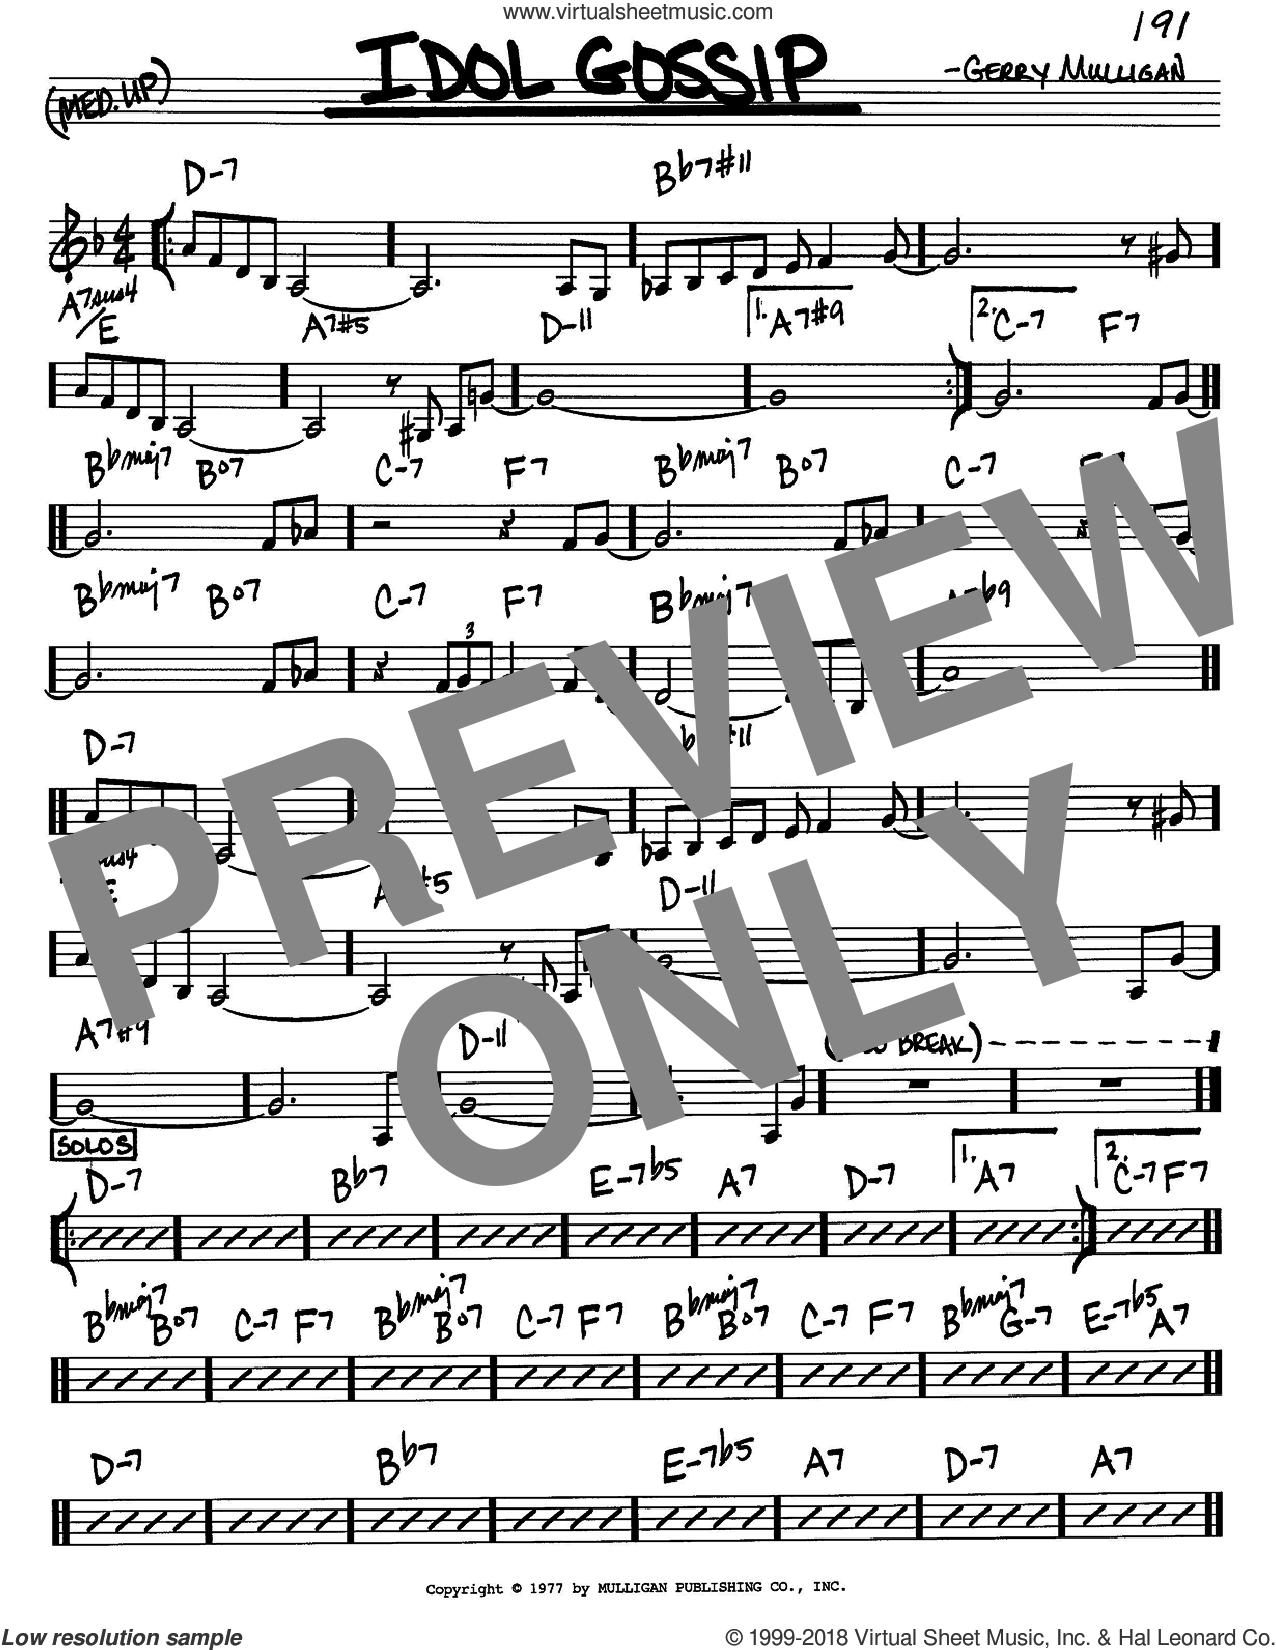 Idol Gossip sheet music for voice and other instruments (C) by Gerry Mulligan. Score Image Preview.